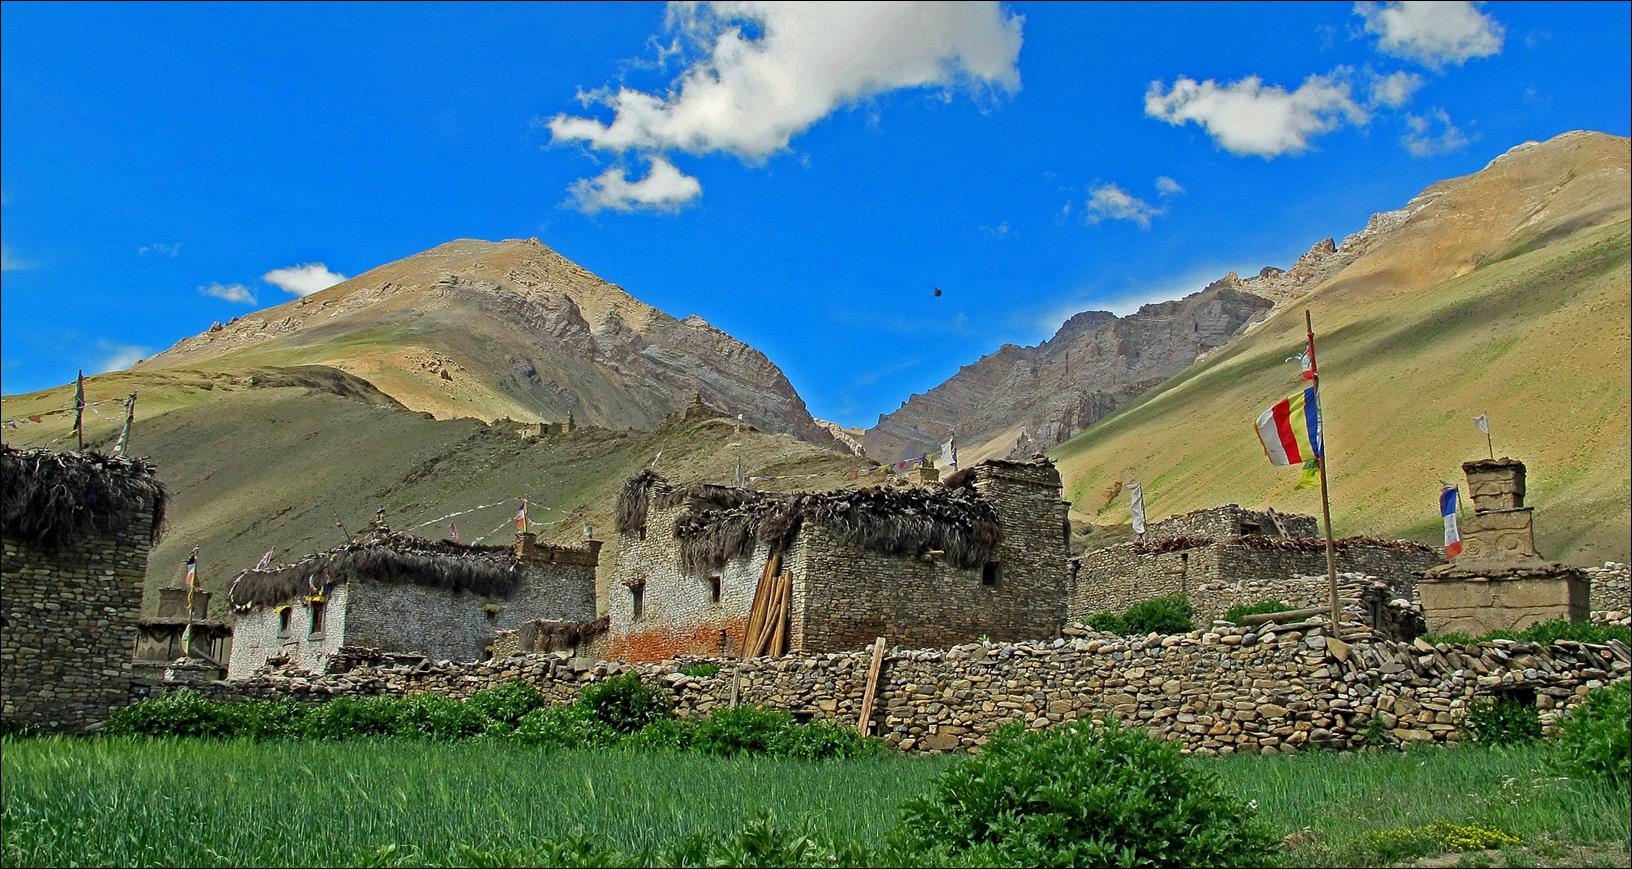 TRekking in Dolpo- the Dho Tarap Valley